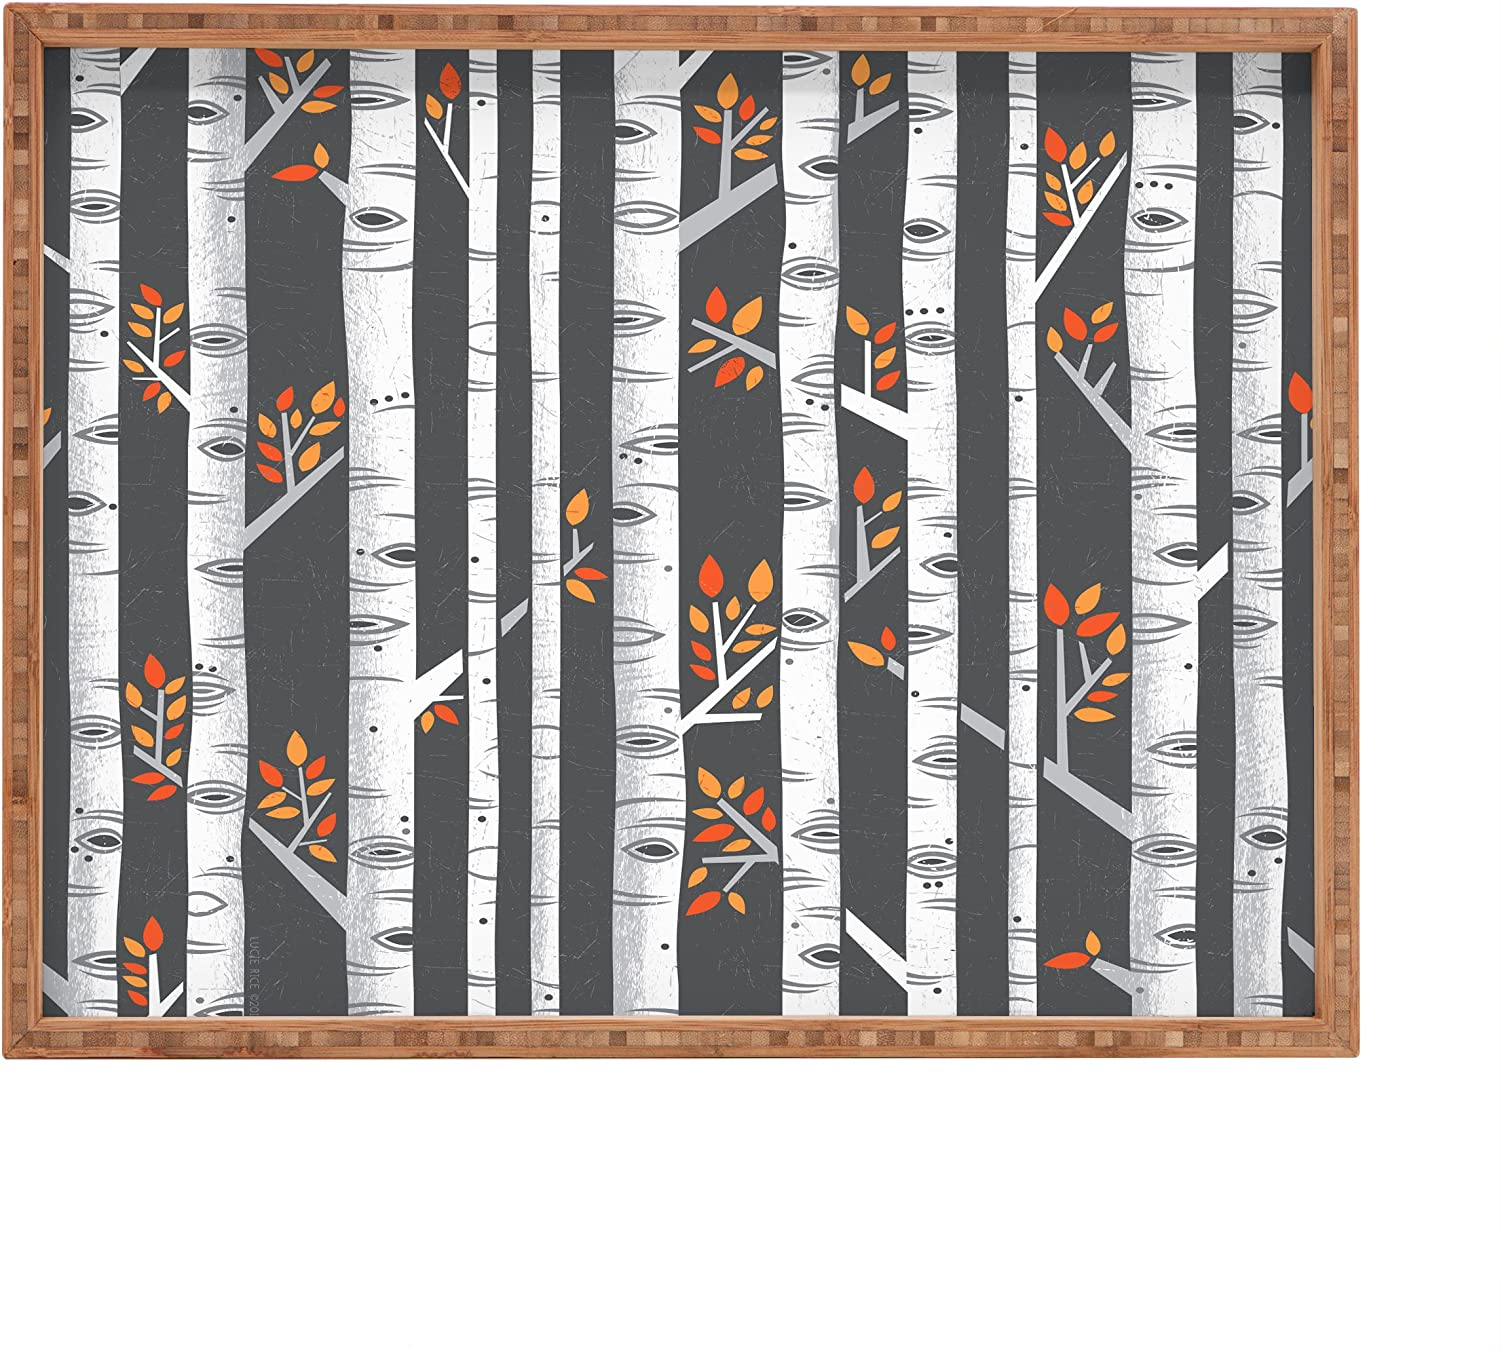 14 x 18 Deny Designs Lucie Rice Birches Be Crazy Indoor//Outdoor Rectangular Tray